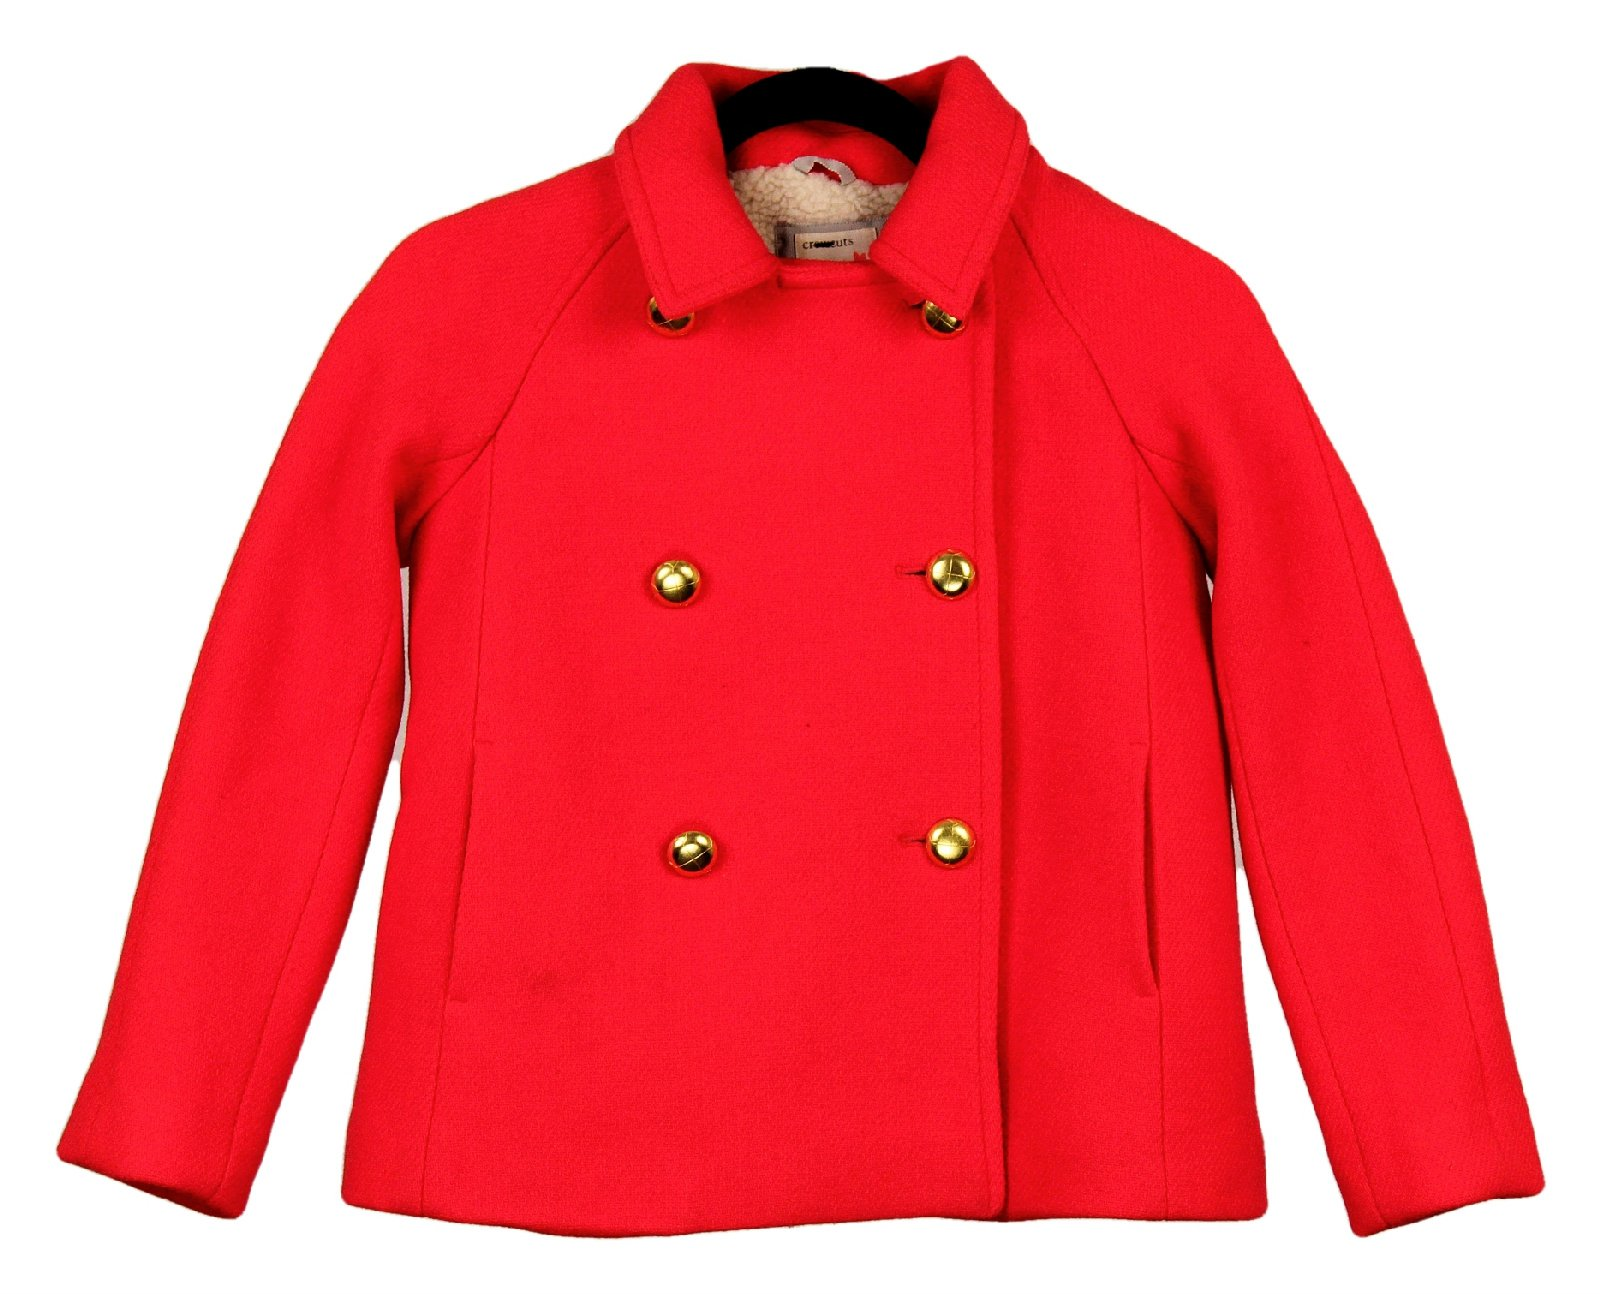 J Crew Crewcuts Girls' Short Peacoat Red Size 10